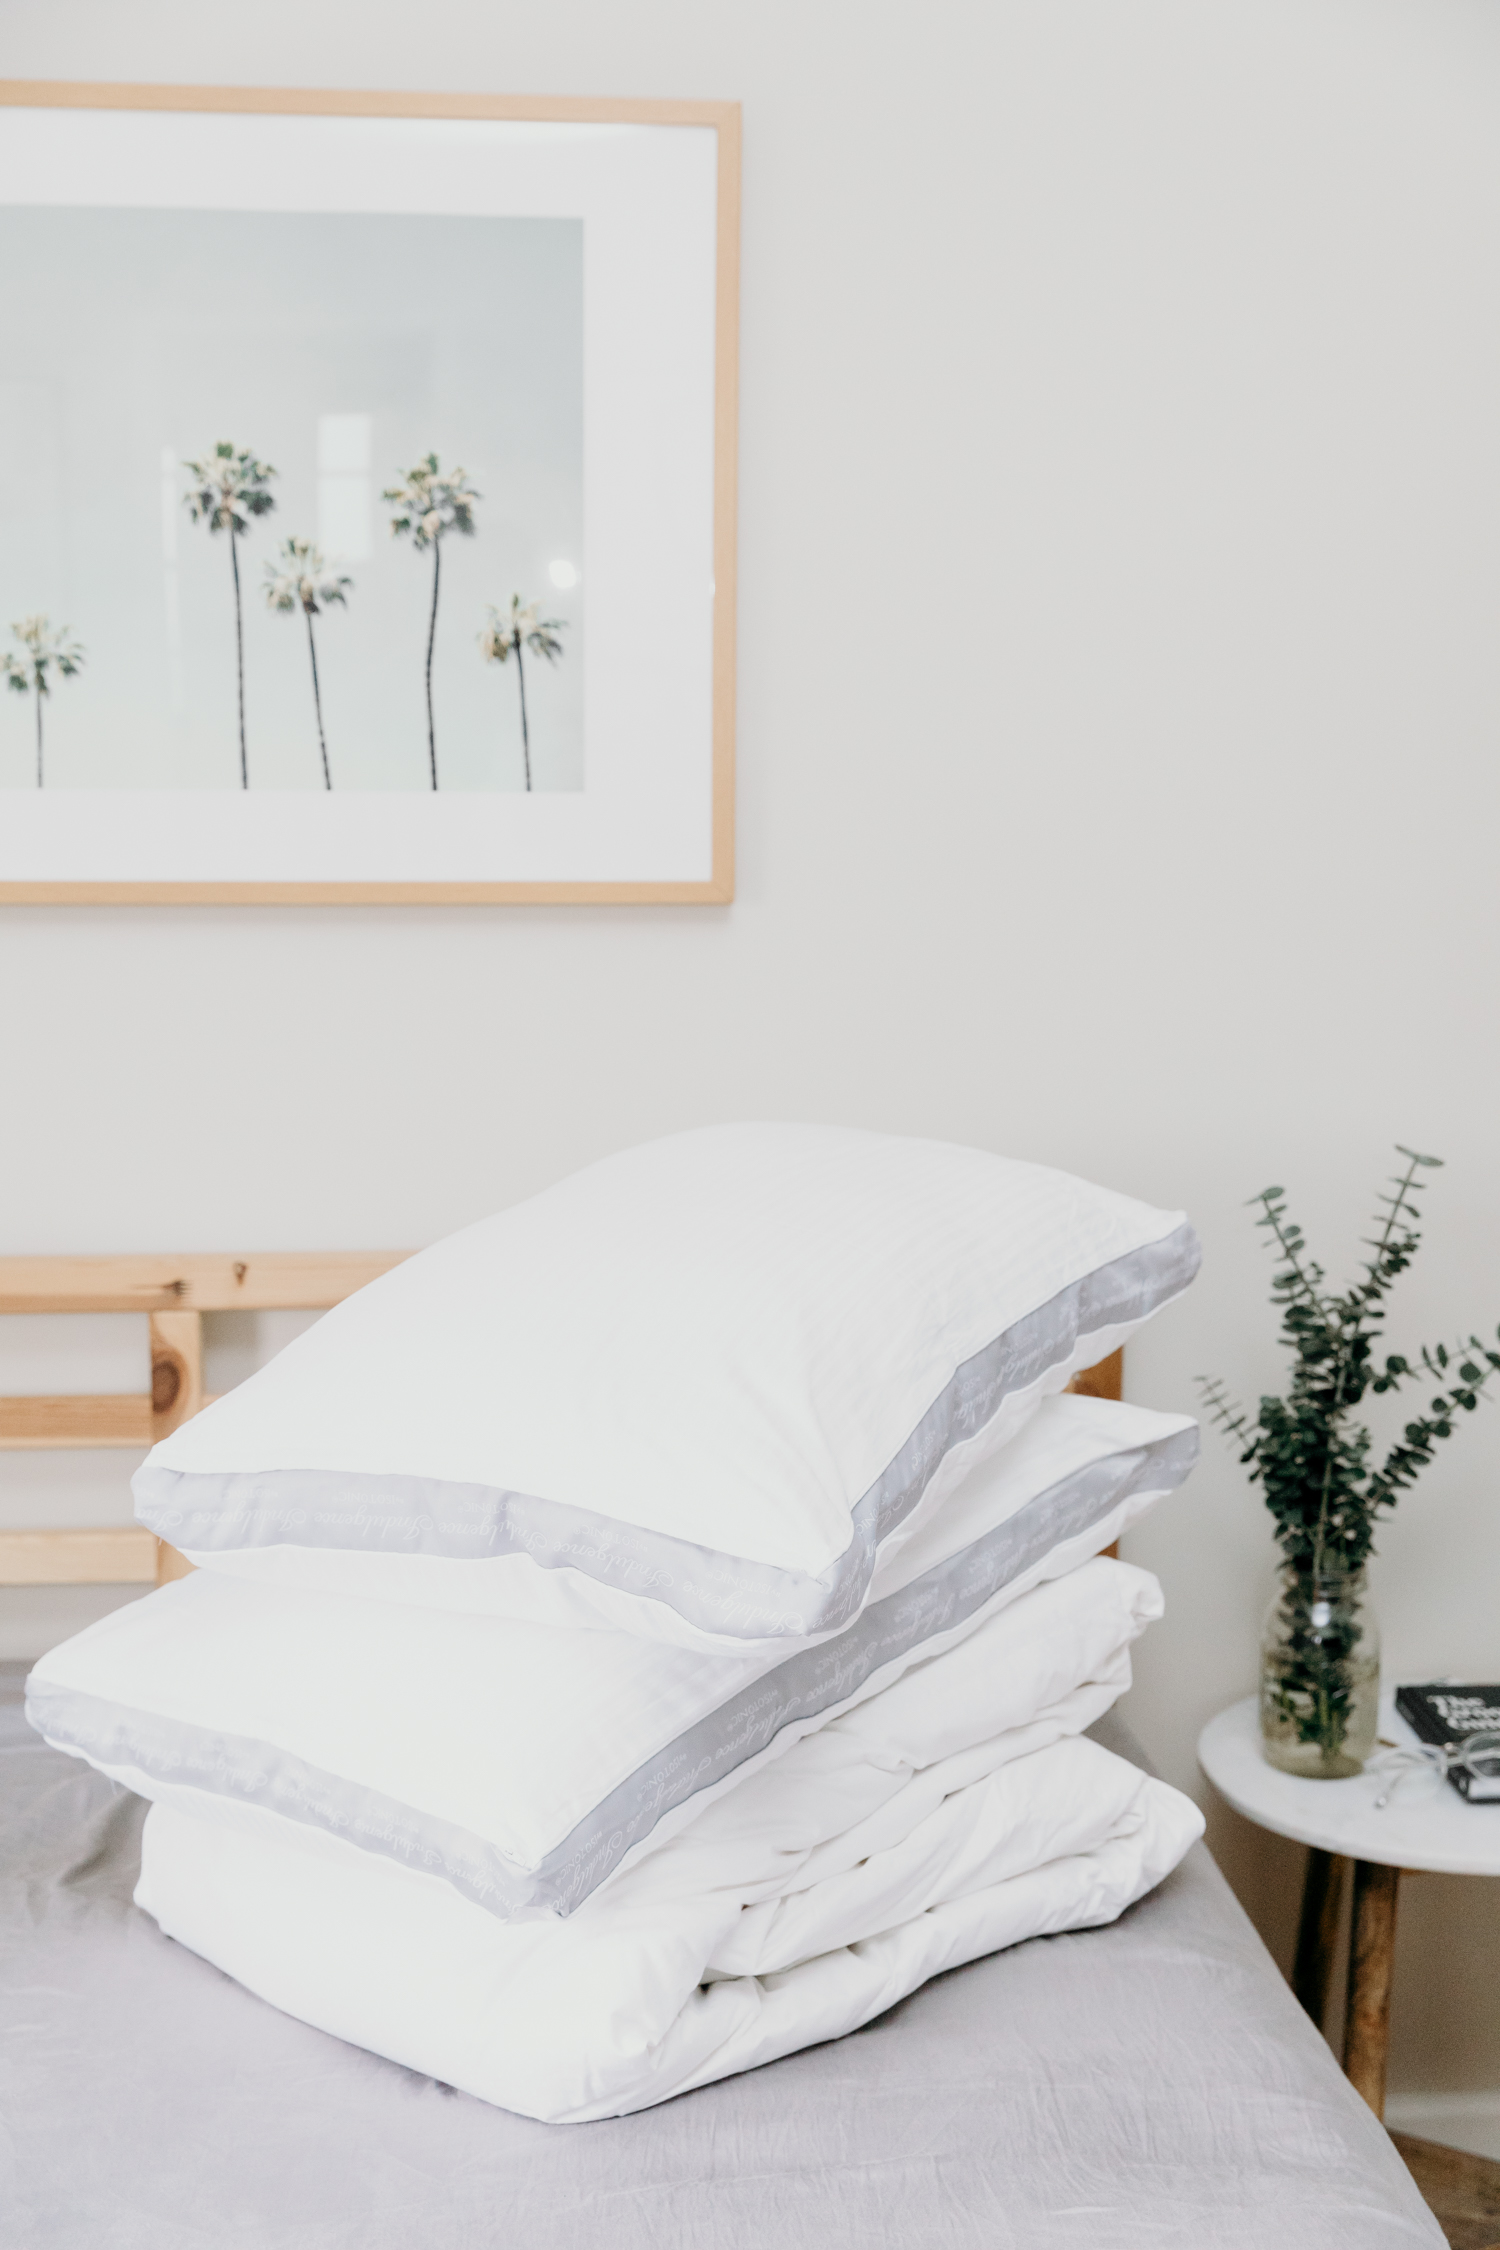 New Bedding from Bed Bath + Beyond